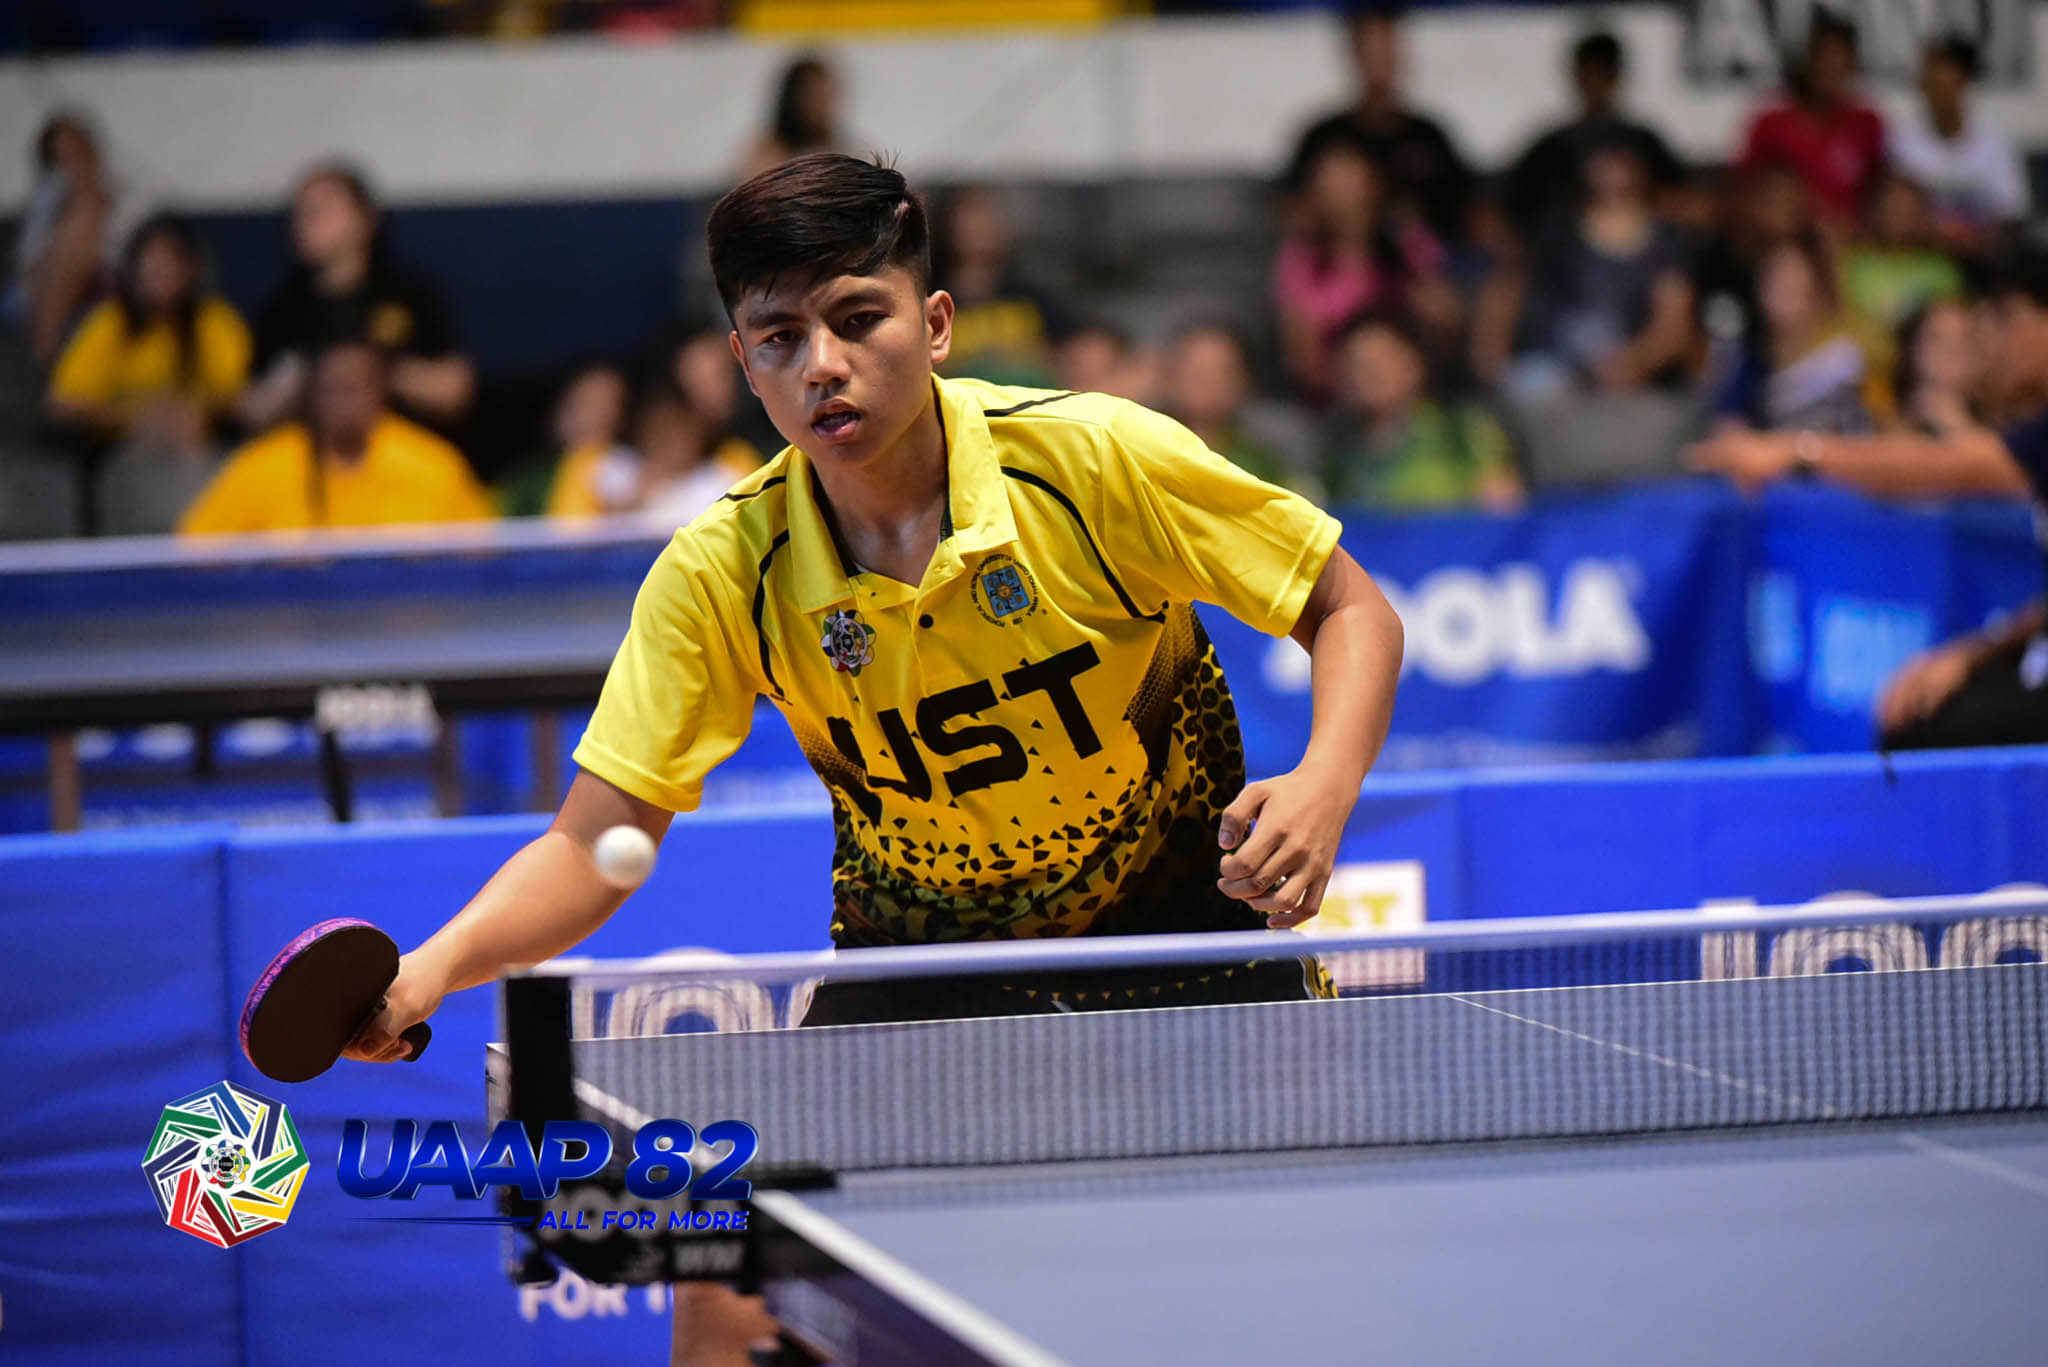 Tiebreaker Times UST, NU stay perfect ahead of showdown ADMU AdU DLSU FEU News NU Table Tennis UAAP UE UP UST  UST Men's Table Tennis UP Men's Table Tennis UE Men's Table Tennis UAAP Season 82 Men's Table Tennis UAAP Season 82 Romualdo Ramiro Prince Garcia NU Men's Table Tennis Mcleen Dizon Harold Celeridad Franz Mogol FEU Men's Table Tennis DLSU Men's Table Tennis Ateneo Men's Table Tennis Alvin Sevilla Adamson Men's Table Tennis